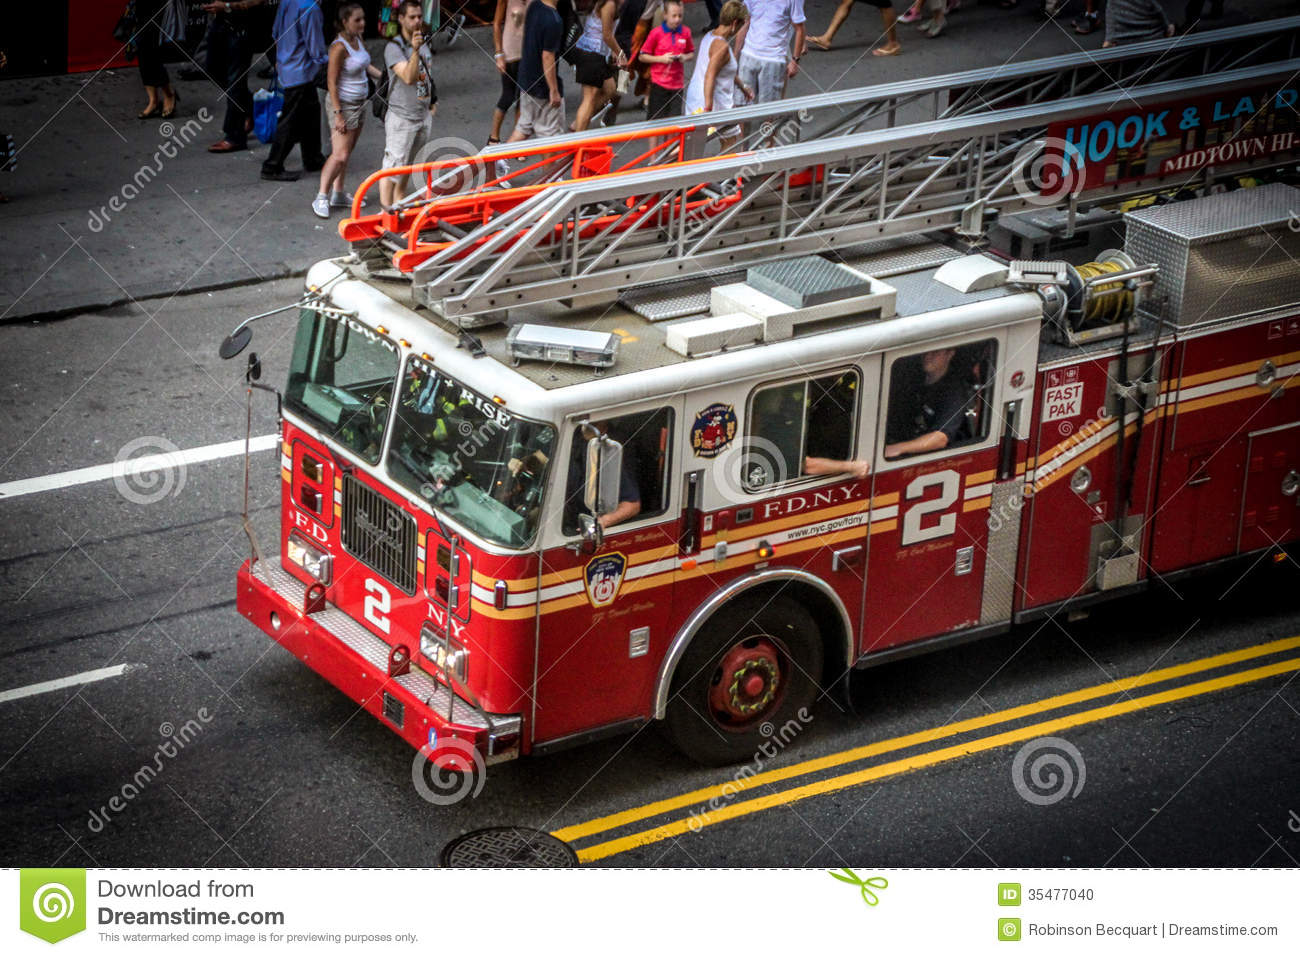 fdny division map with Stock Photo Fire Truck Times Square New York City Usa August Rushing W Nd St Near Image35477040 on 3077772494 besides 5817042048 additionally Pentagon likewise 3042323874 furthermore Stock Photo Fire Truck Times Square New York City Usa August Rushing W Nd St Near Image35477040.